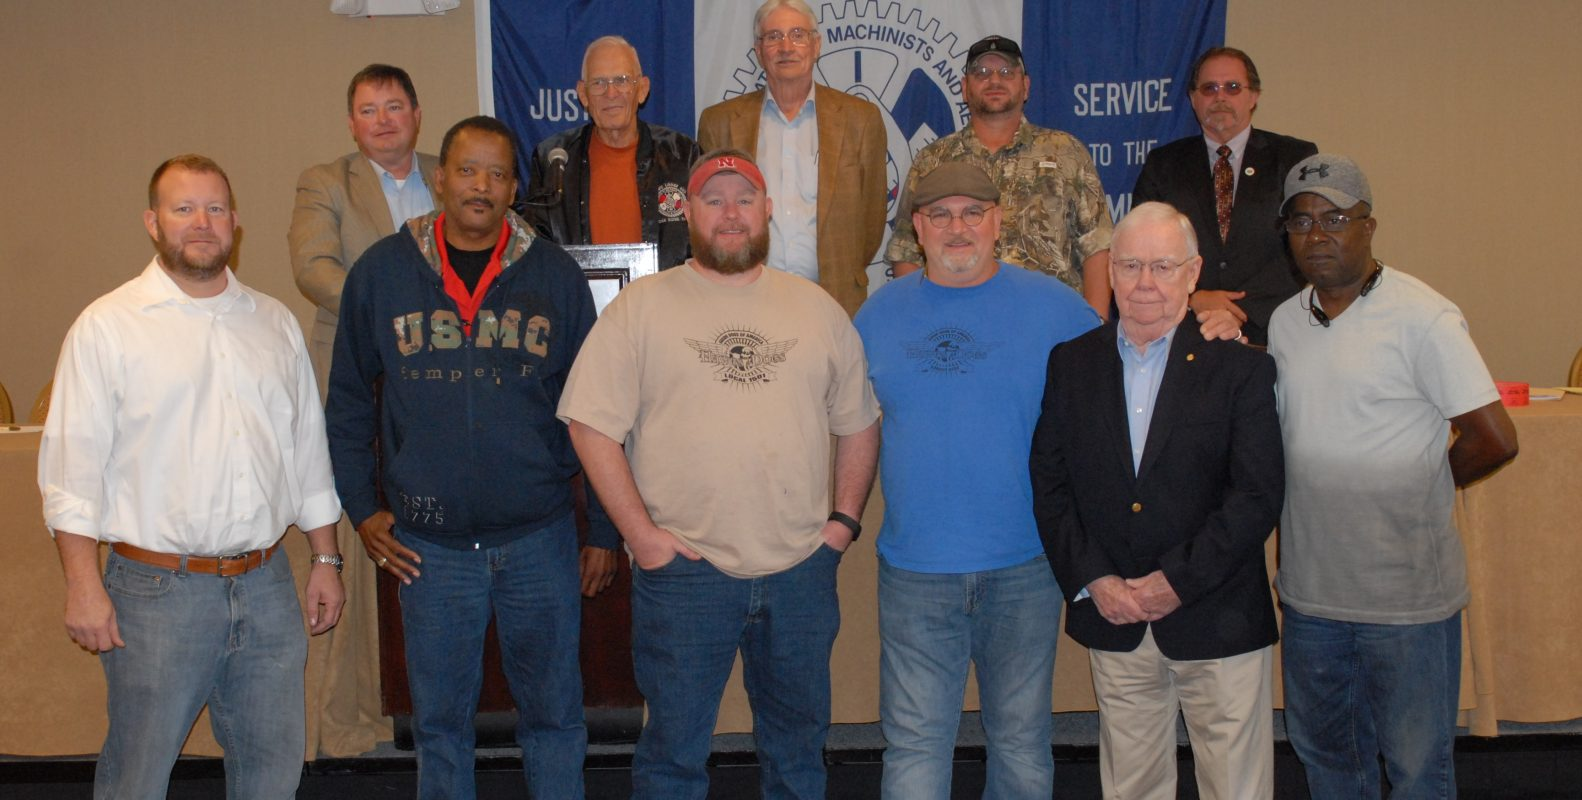 Armed Forces Veterans of the Tennessee State Council of Machinists